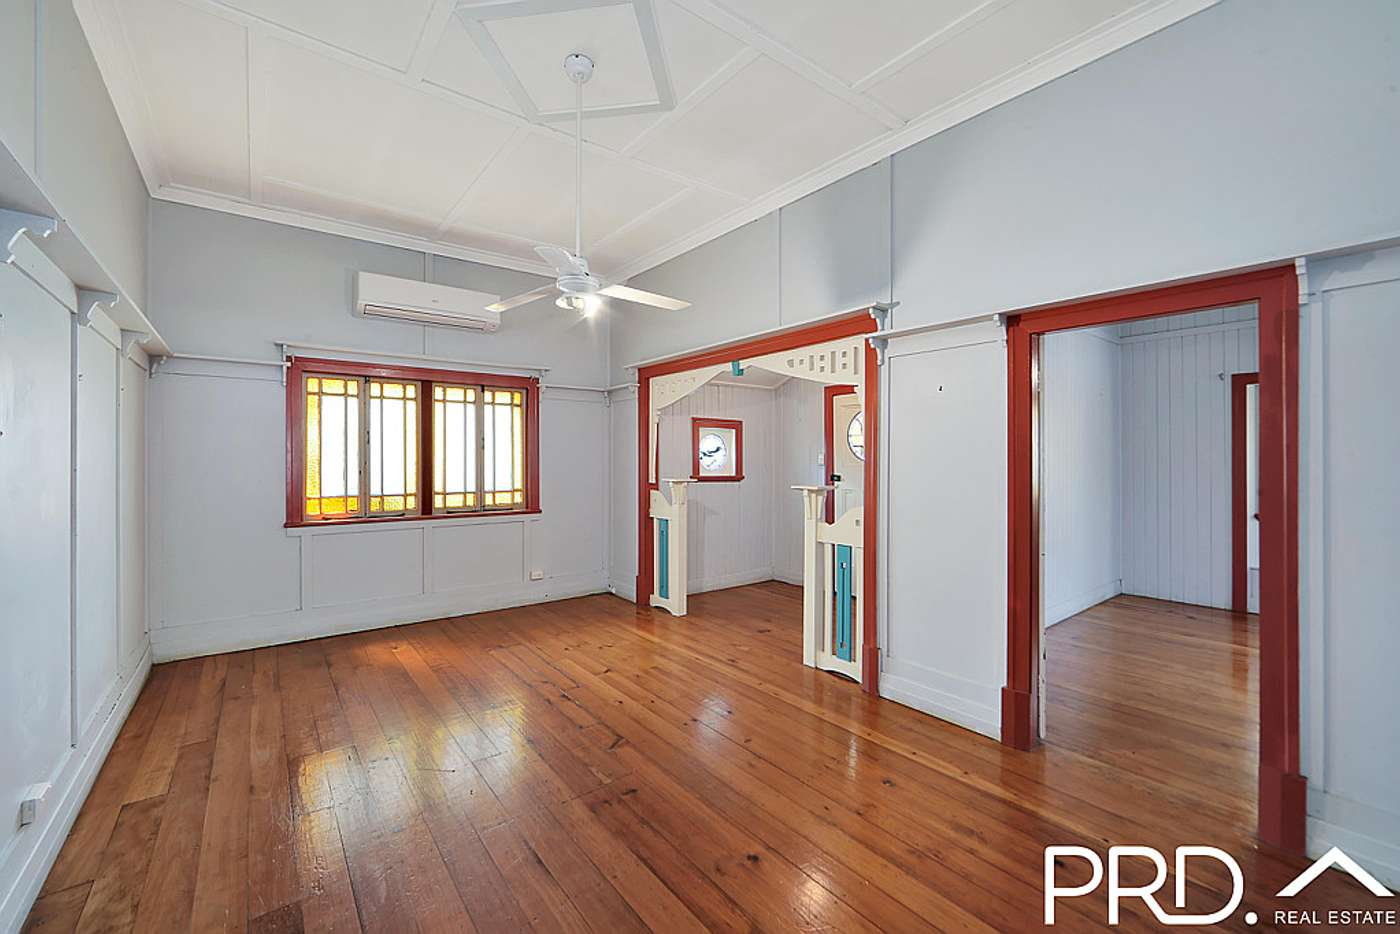 Main view of Homely house listing, 25 Buss Street, Bundaberg South QLD 4670